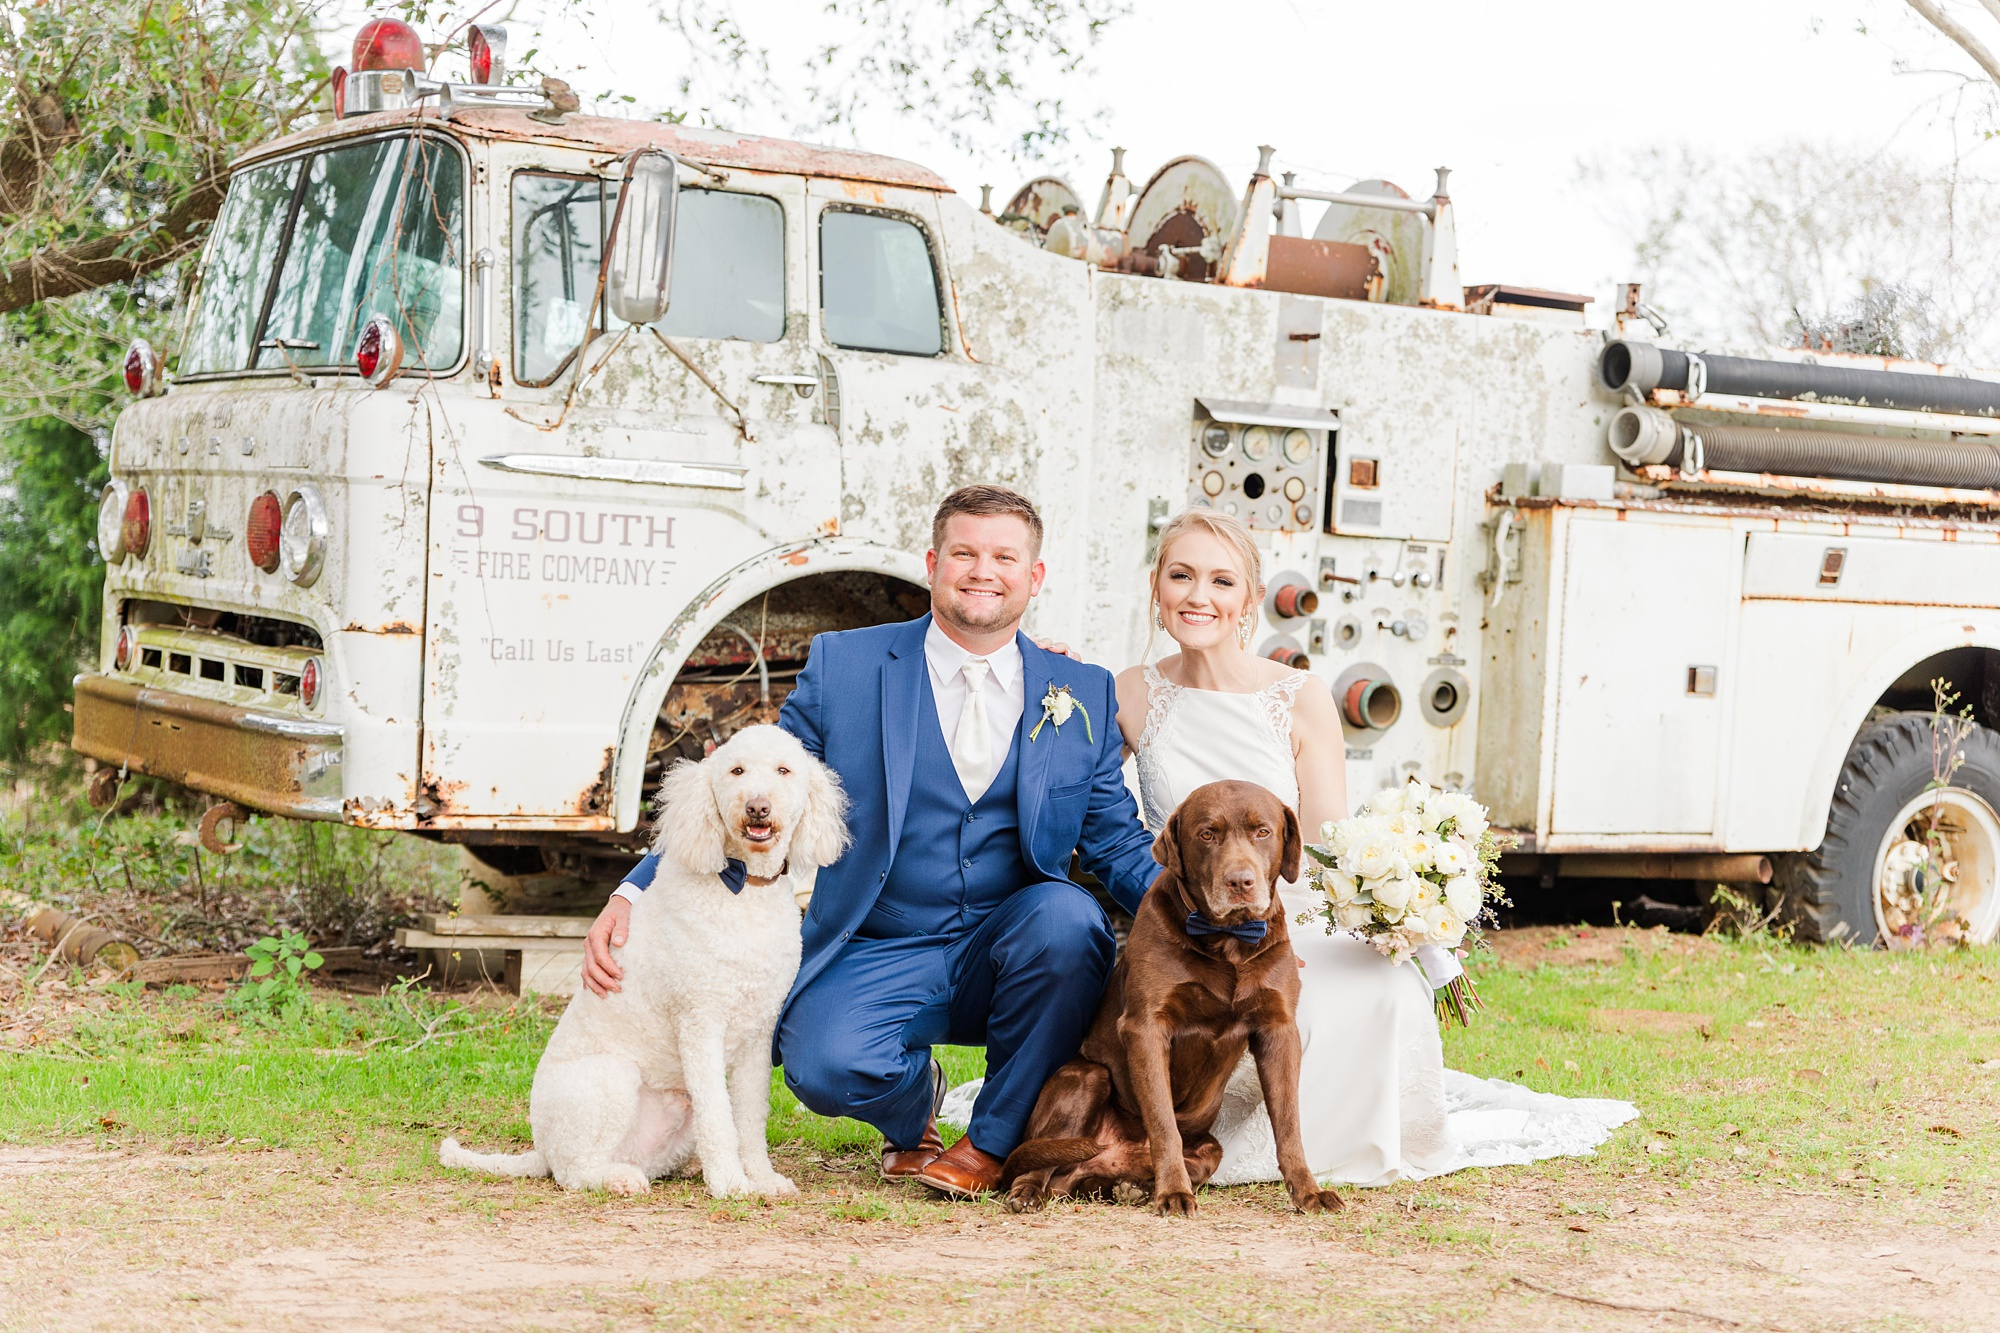 newlyweds pose with dogs in front of old fire engine